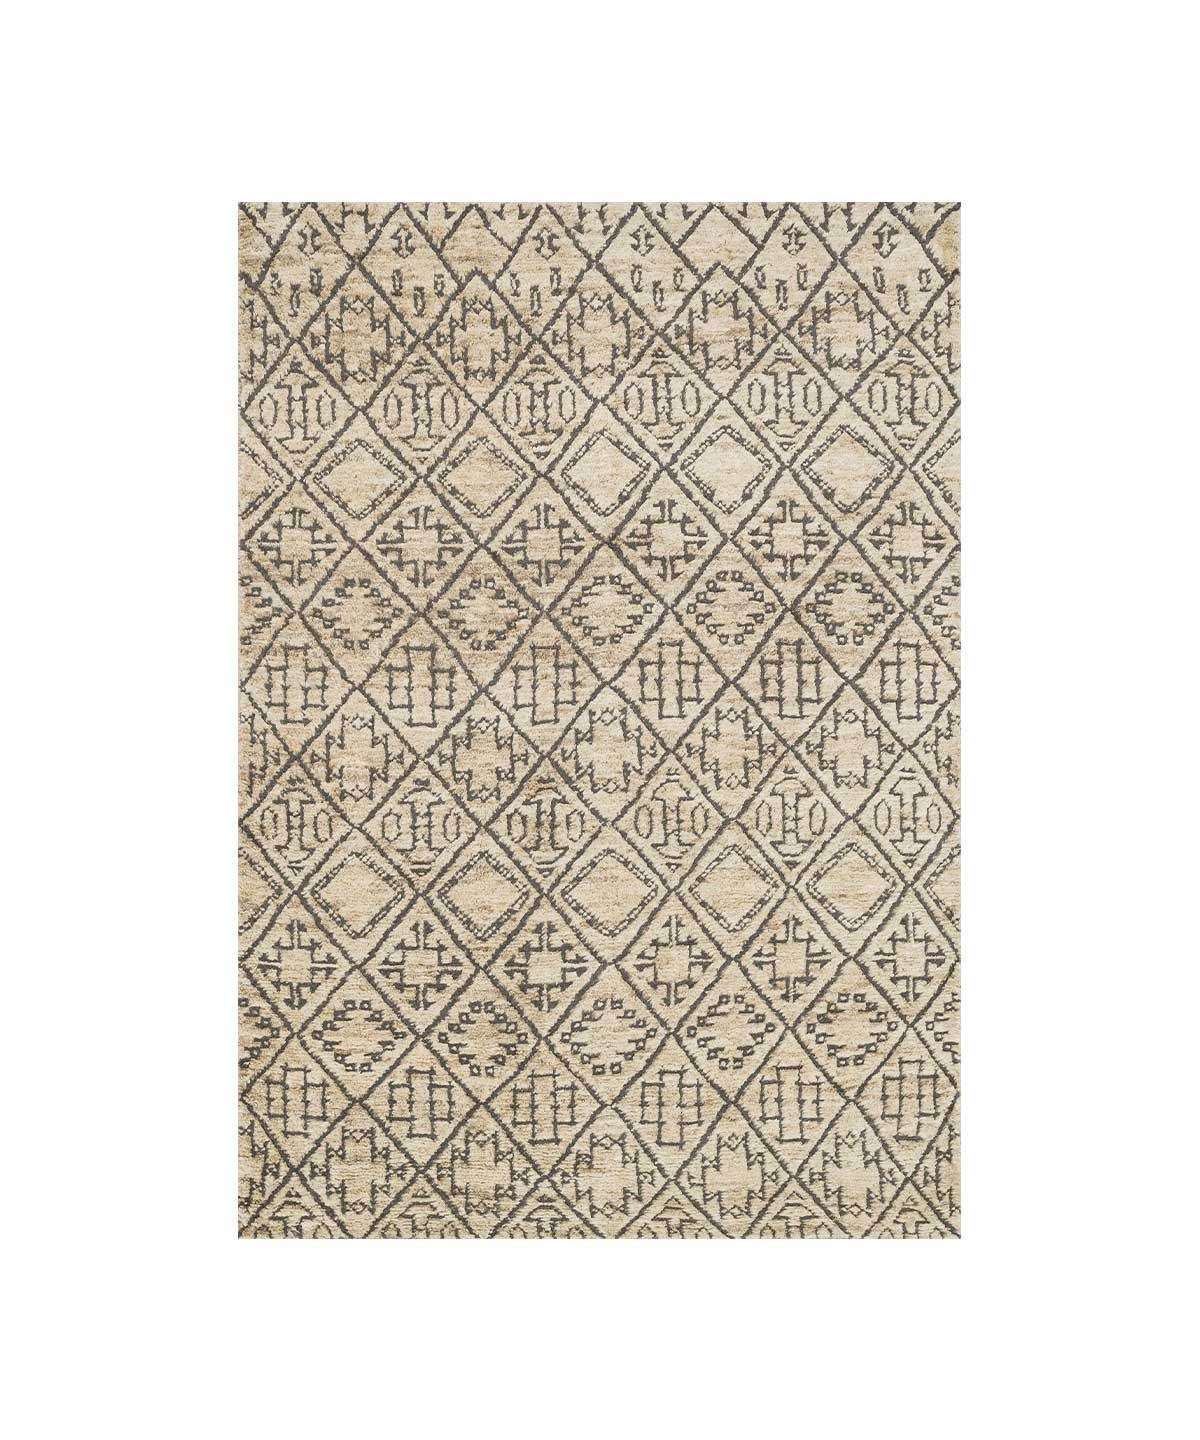 Sahara Rug in Sand by Loloi | TRNK